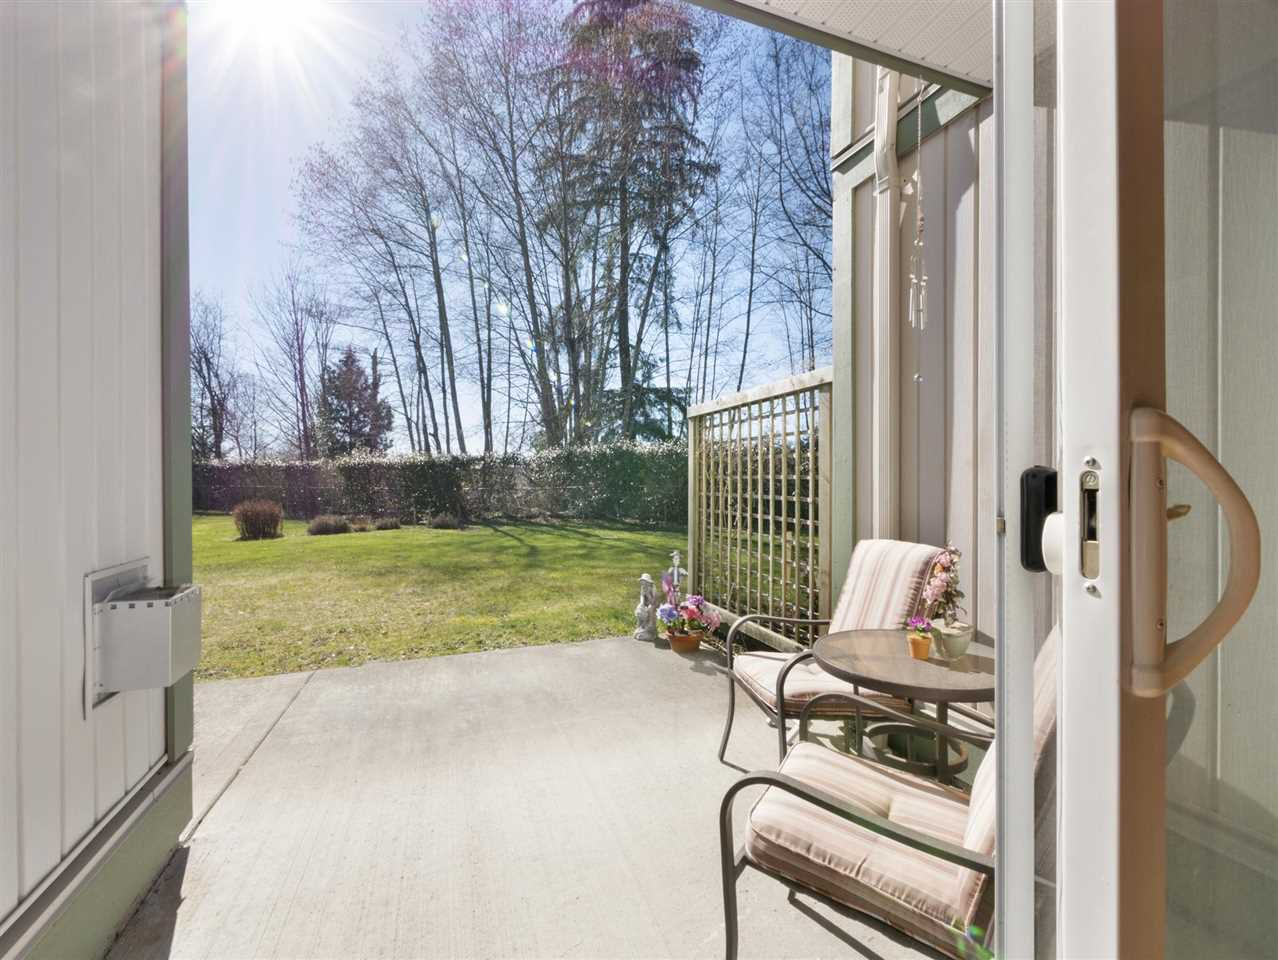 """Main Photo: 34 735 PARK Road in Gibsons: Gibsons & Area Townhouse for sale in """"SHERWOOD GROVE"""" (Sunshine Coast)  : MLS®# R2352422"""